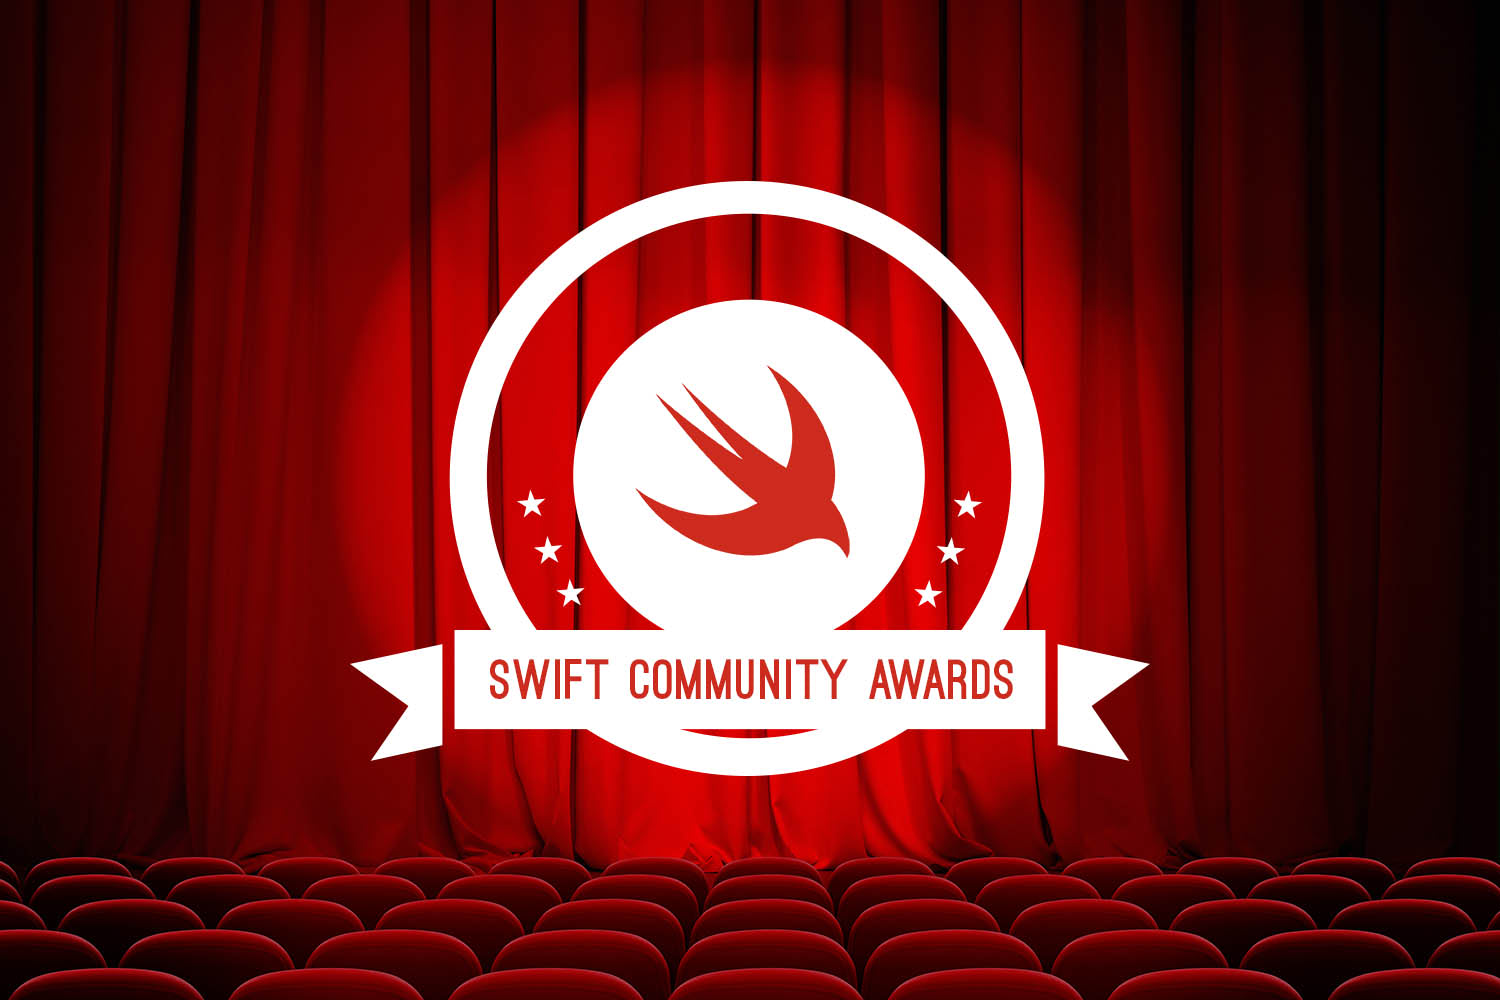 Nominations open for the 2019 Swift Community Awards